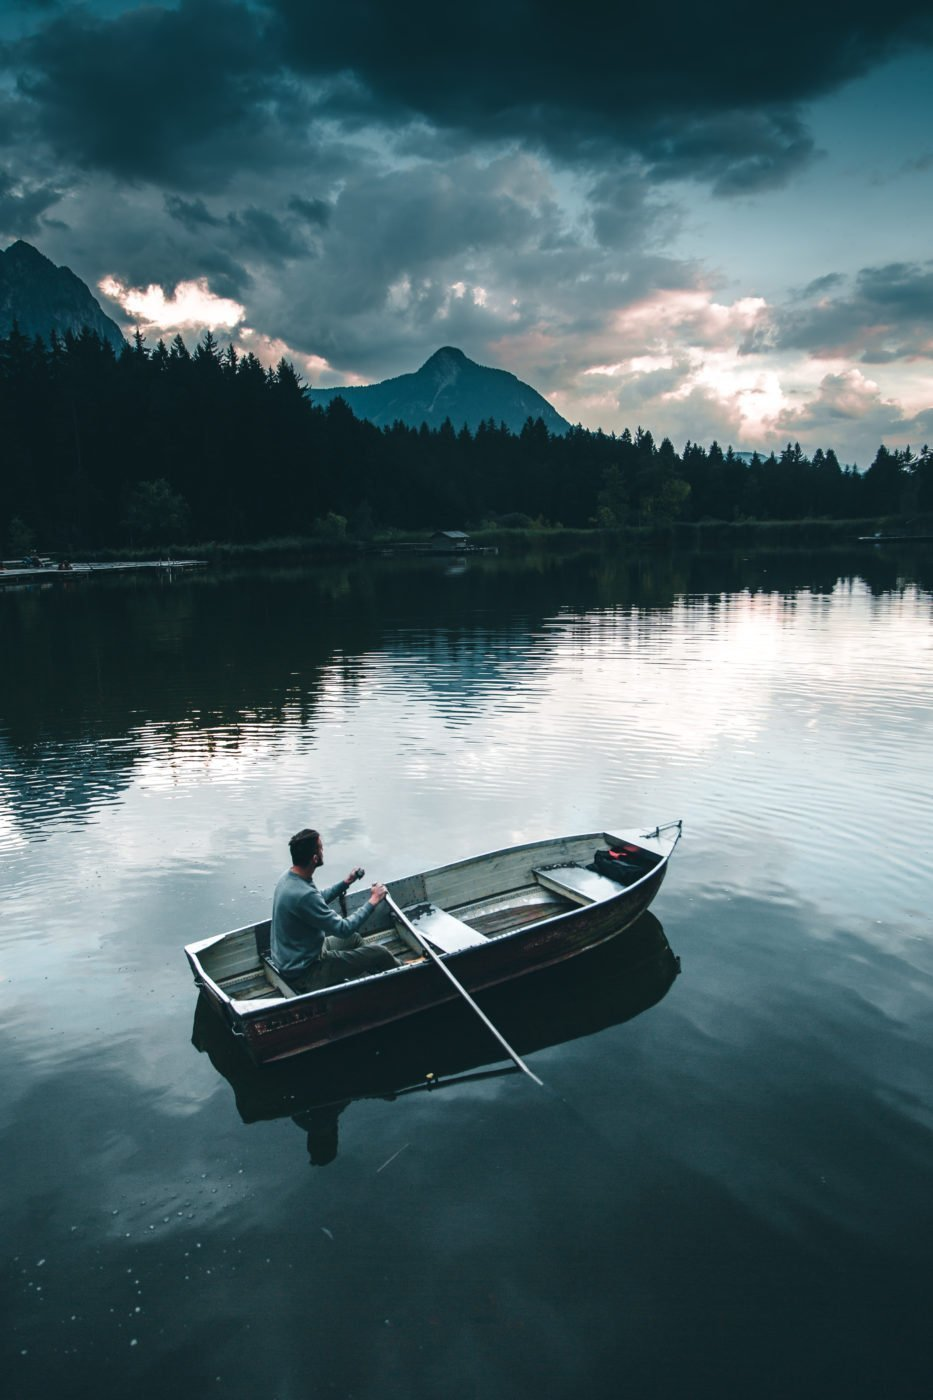 Lago di Fie, famous Instagram location in South Tyrol